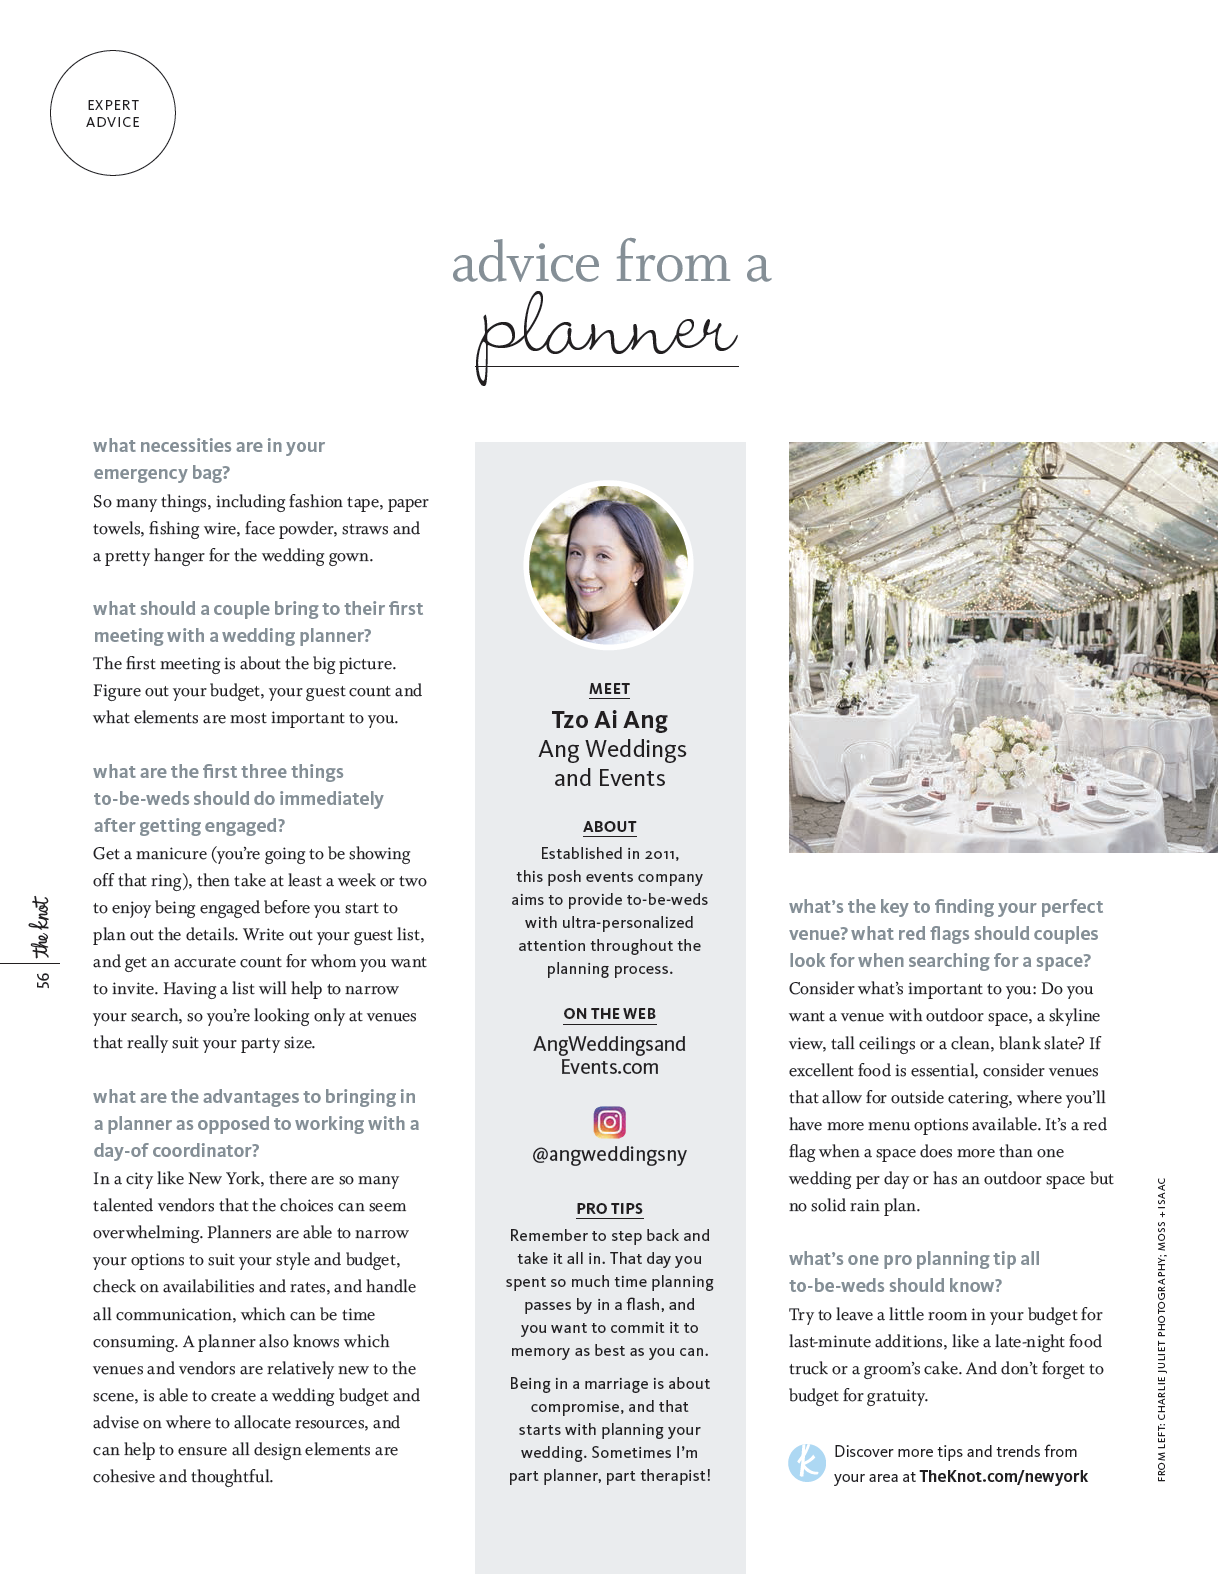 The Knot: Expert Advice from a Wedding Plannet